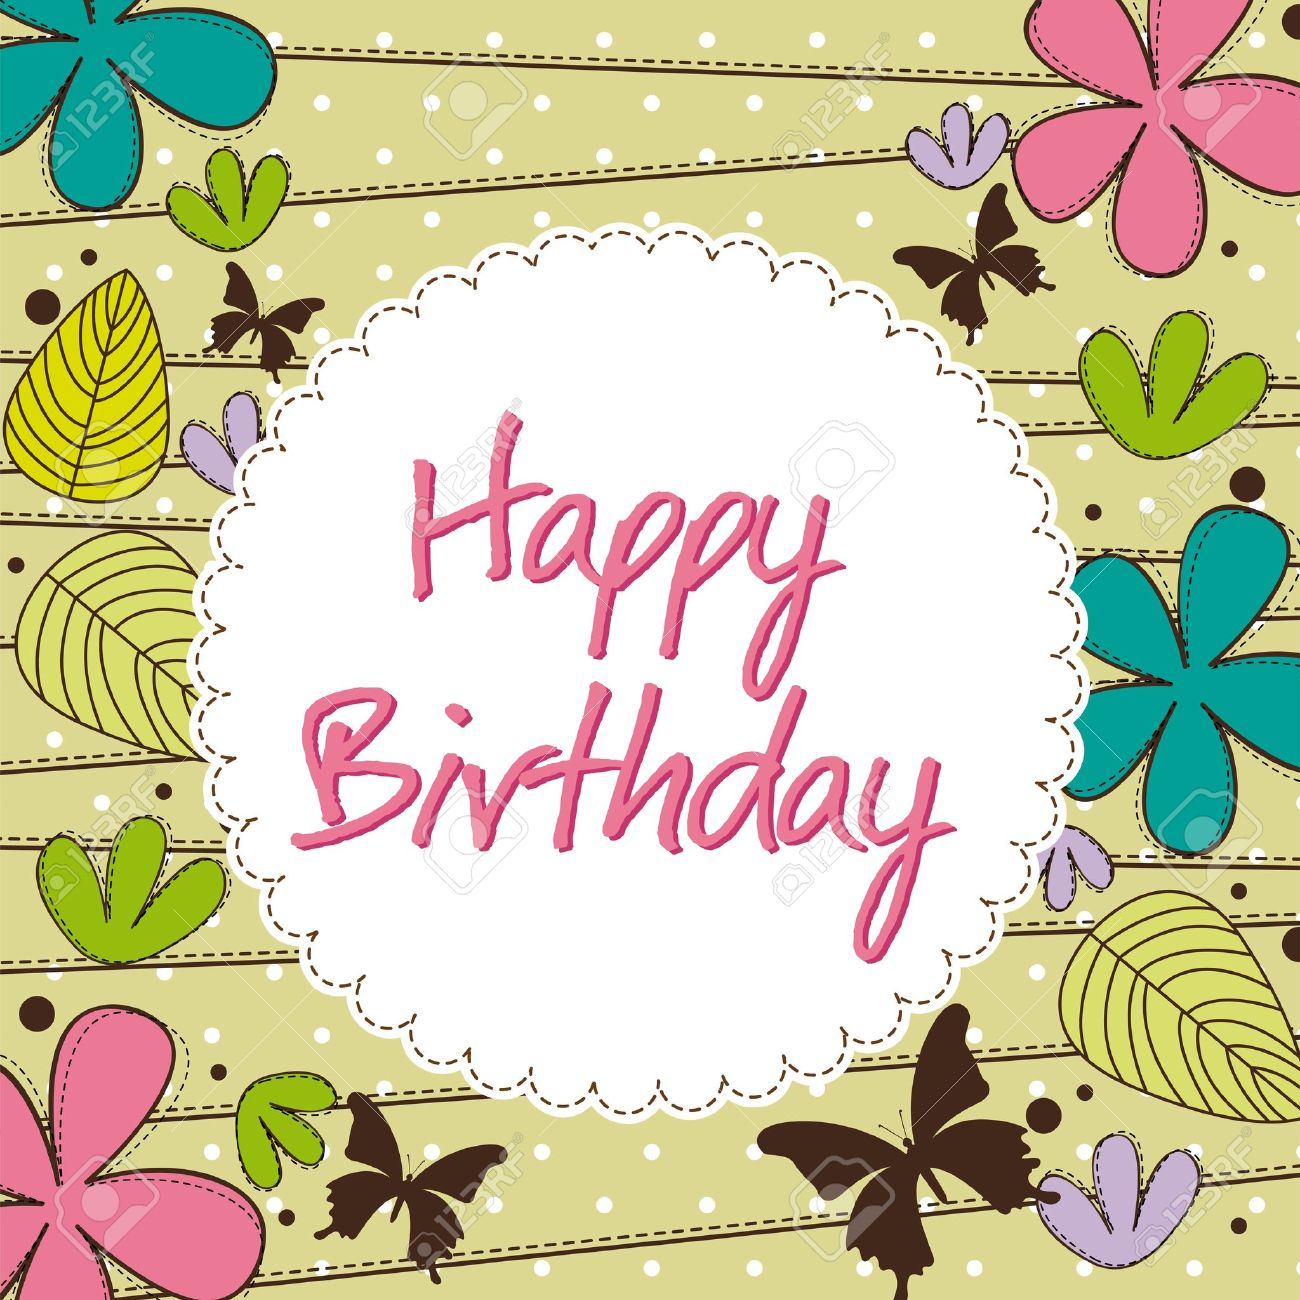 Cute Happy Birthday Card With Flower Royalty Free Cliparts – Flower Greetings for Birthday